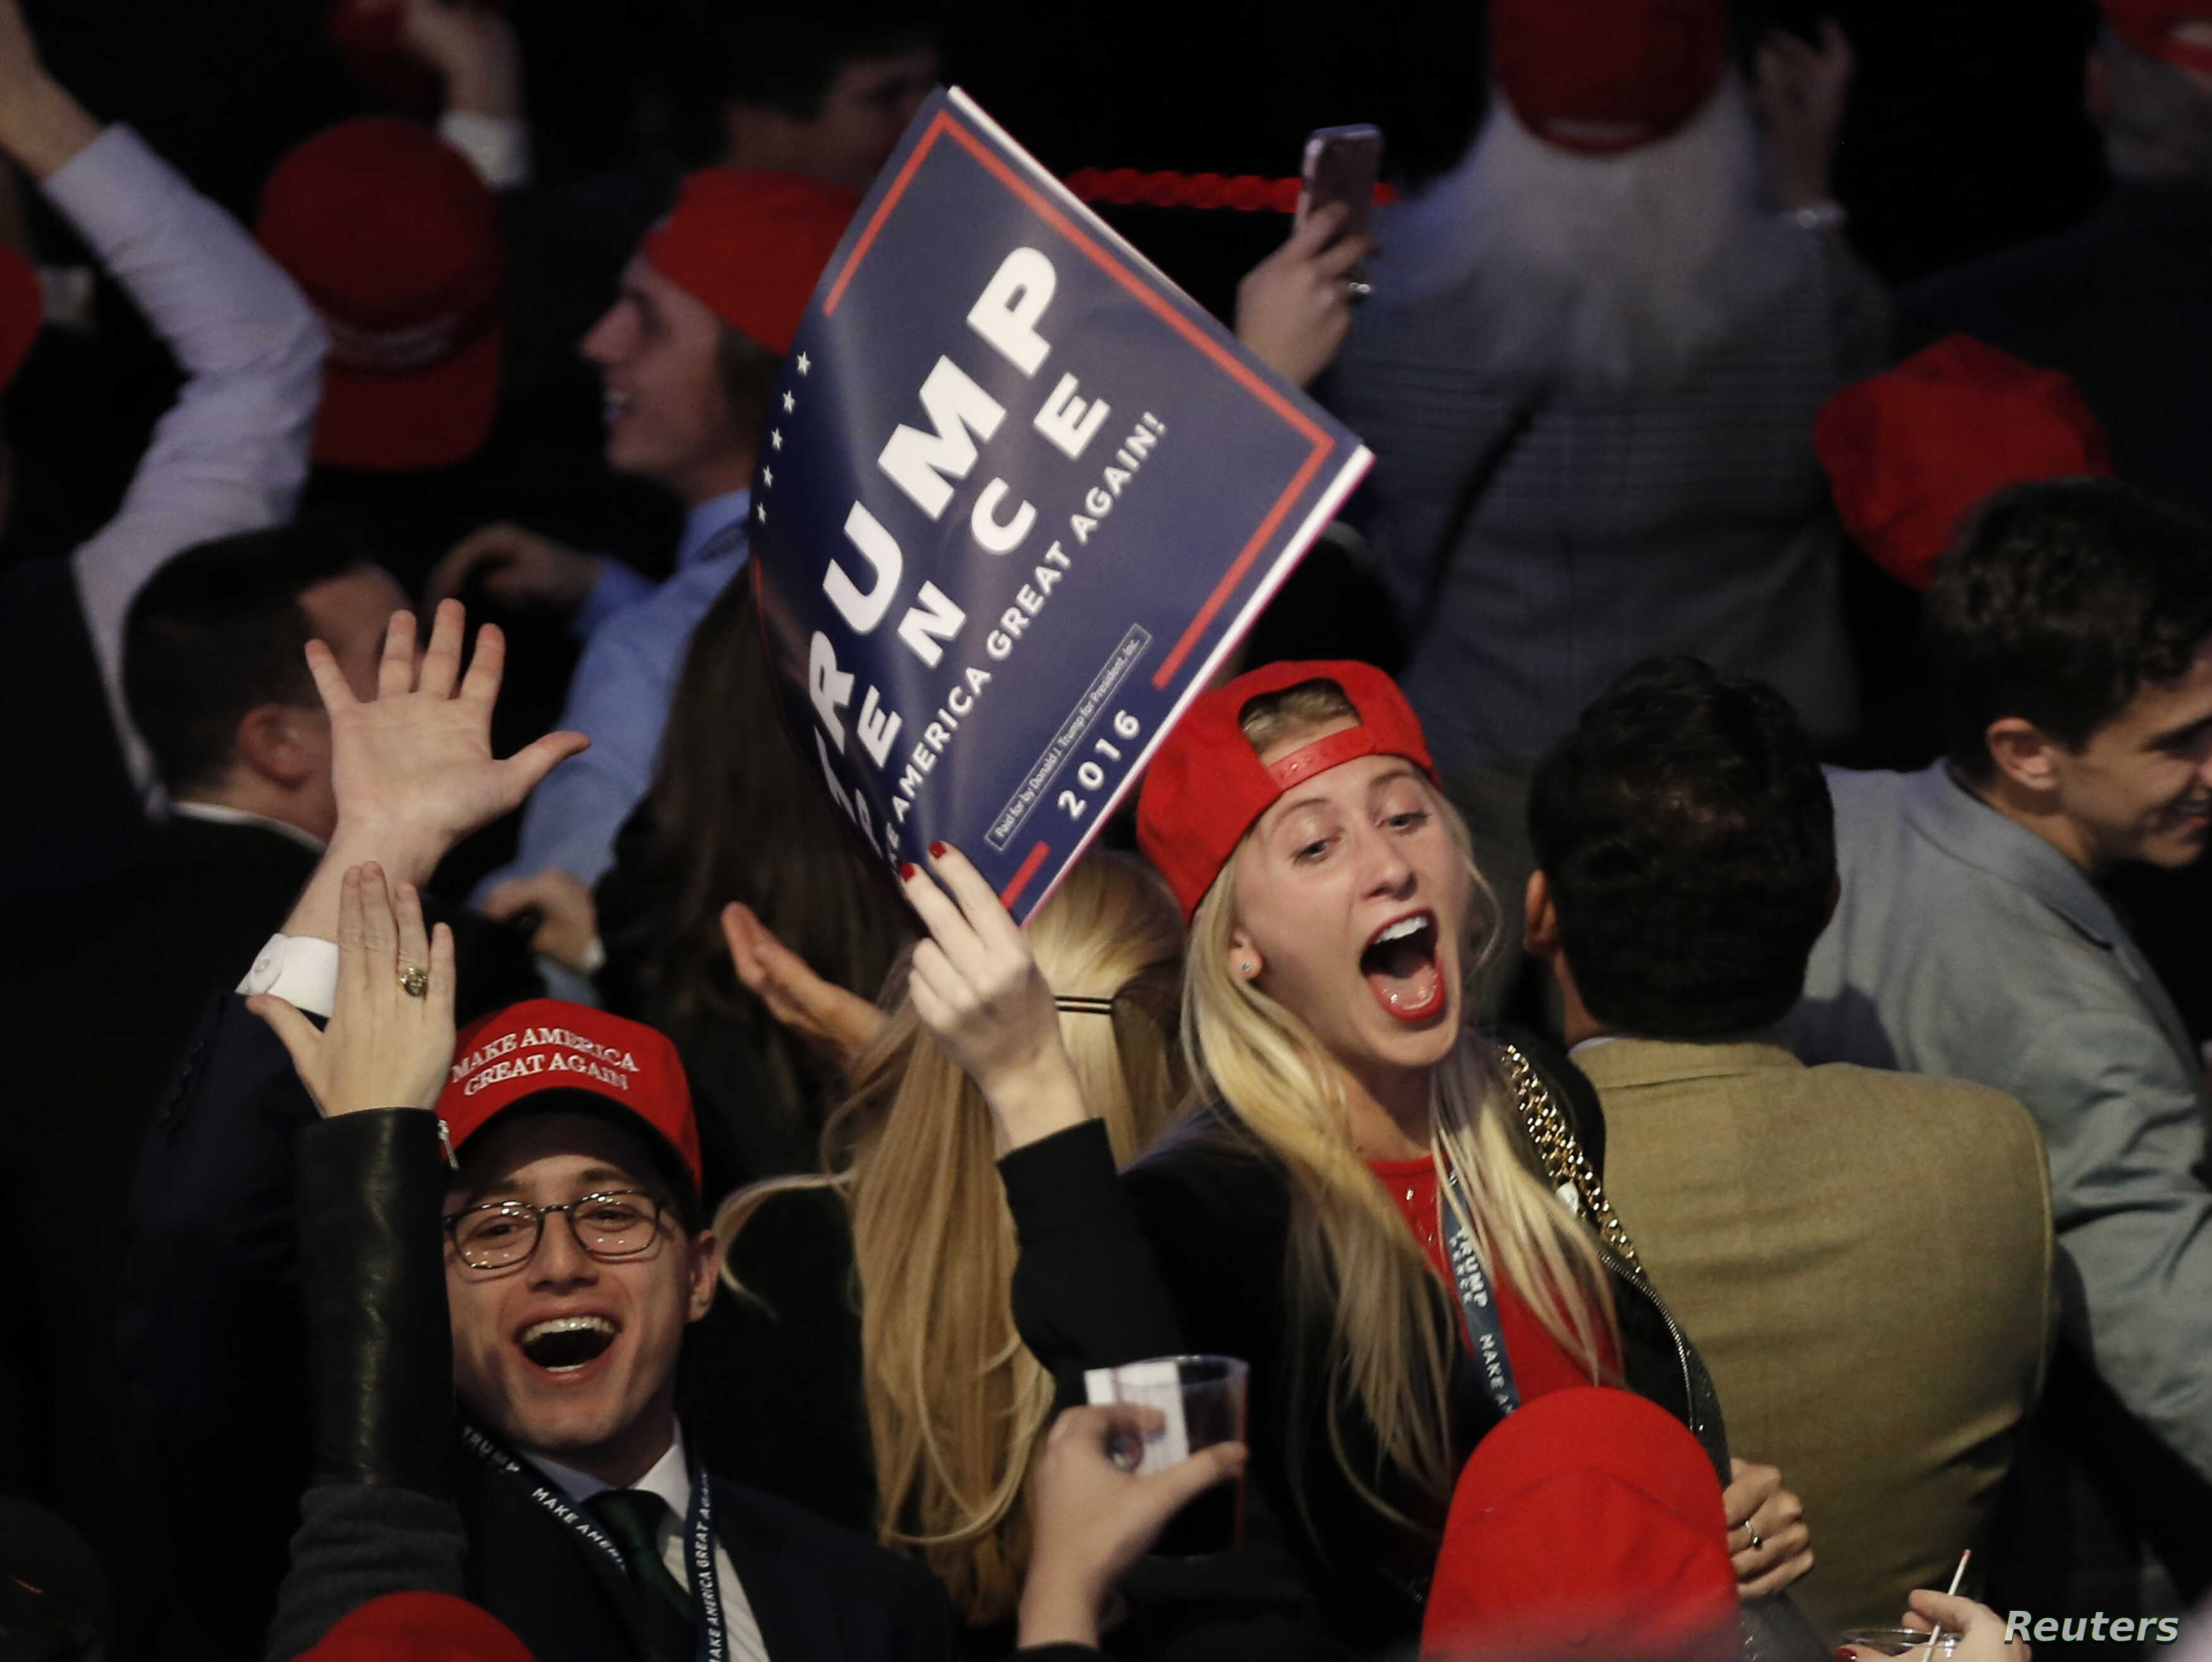 Trump supporters celebrate as they watch election returns come in at Republican presidential nominee Donald Trump's election night rally in Manhattan, New York, Nov. 8, 2016.